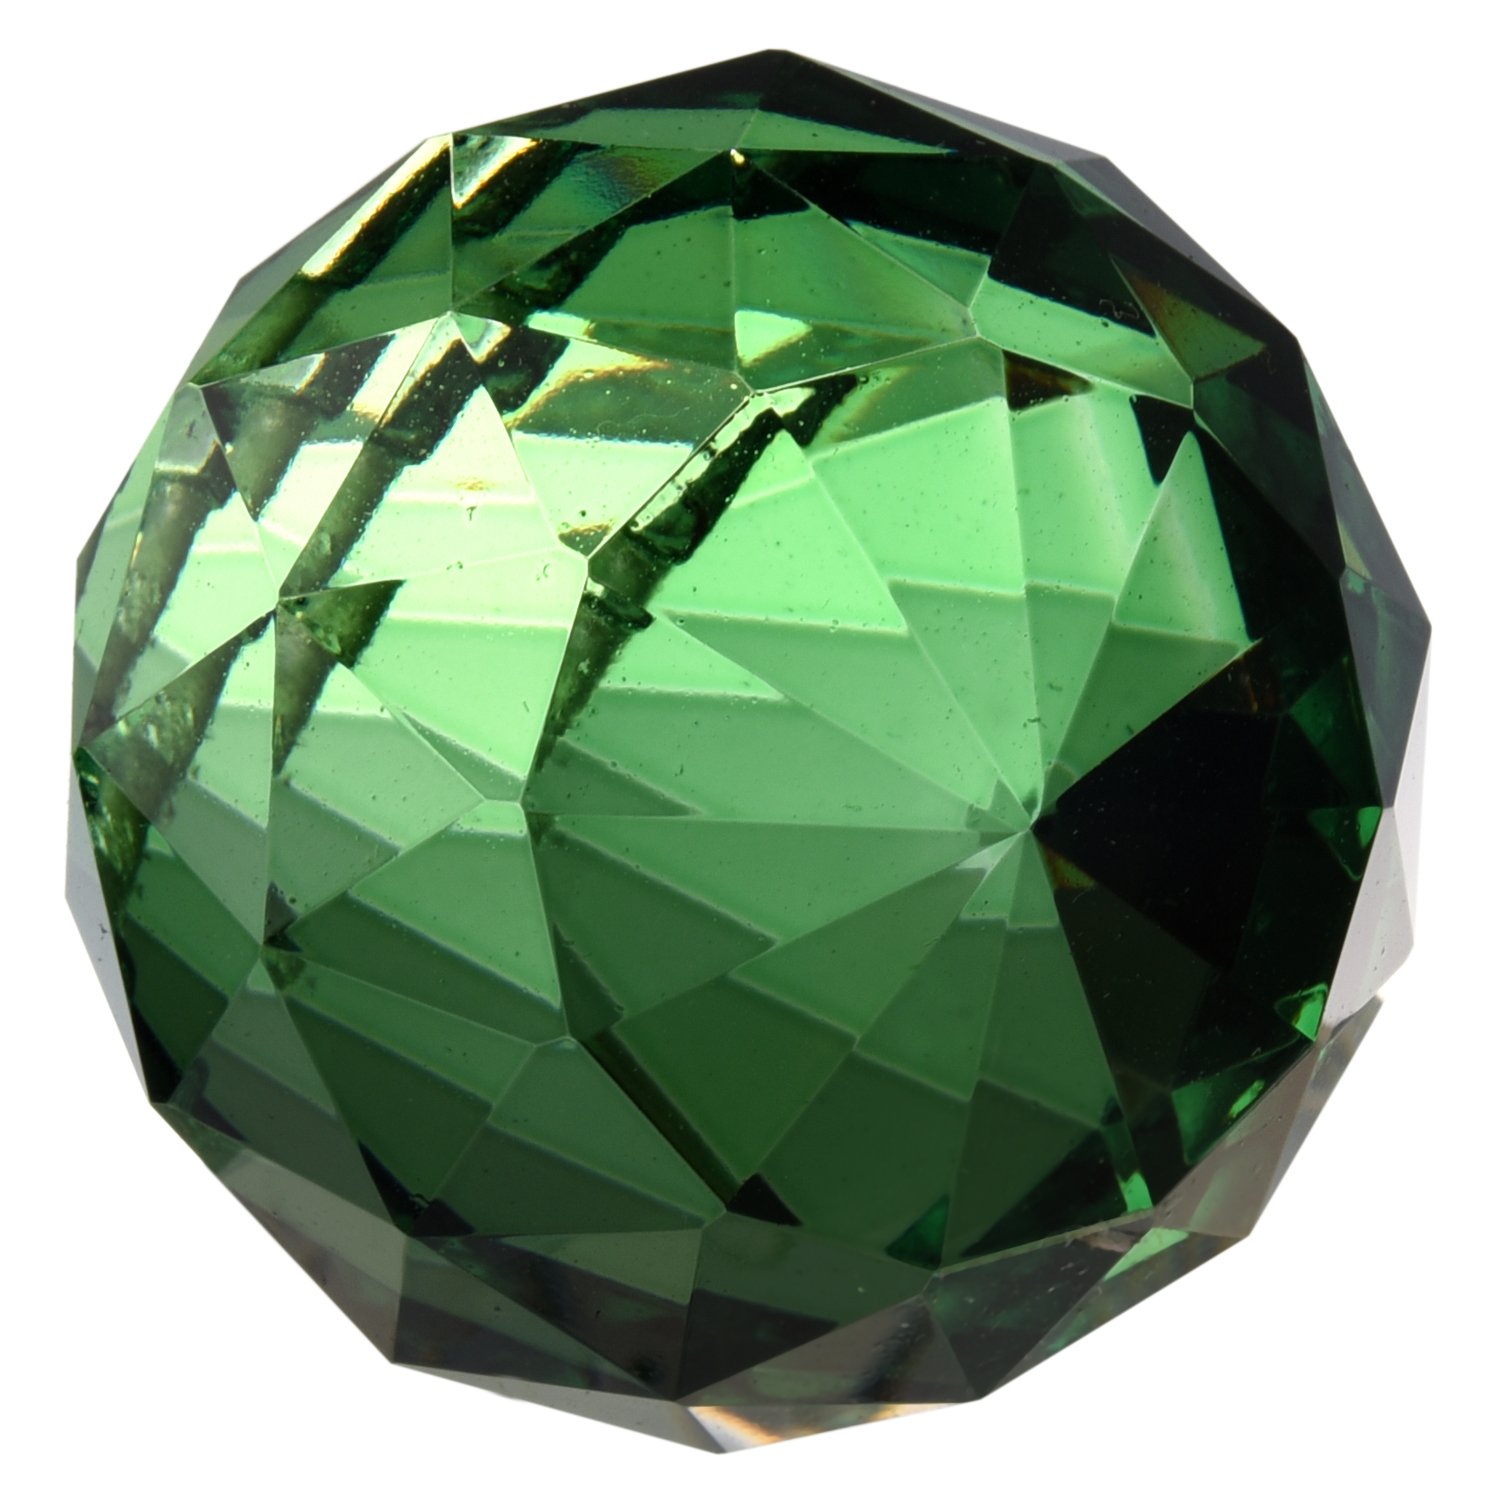 CSS 40mm Vintage Crystal Green Feng Shui Ball Placed in window ornament make Rainbow